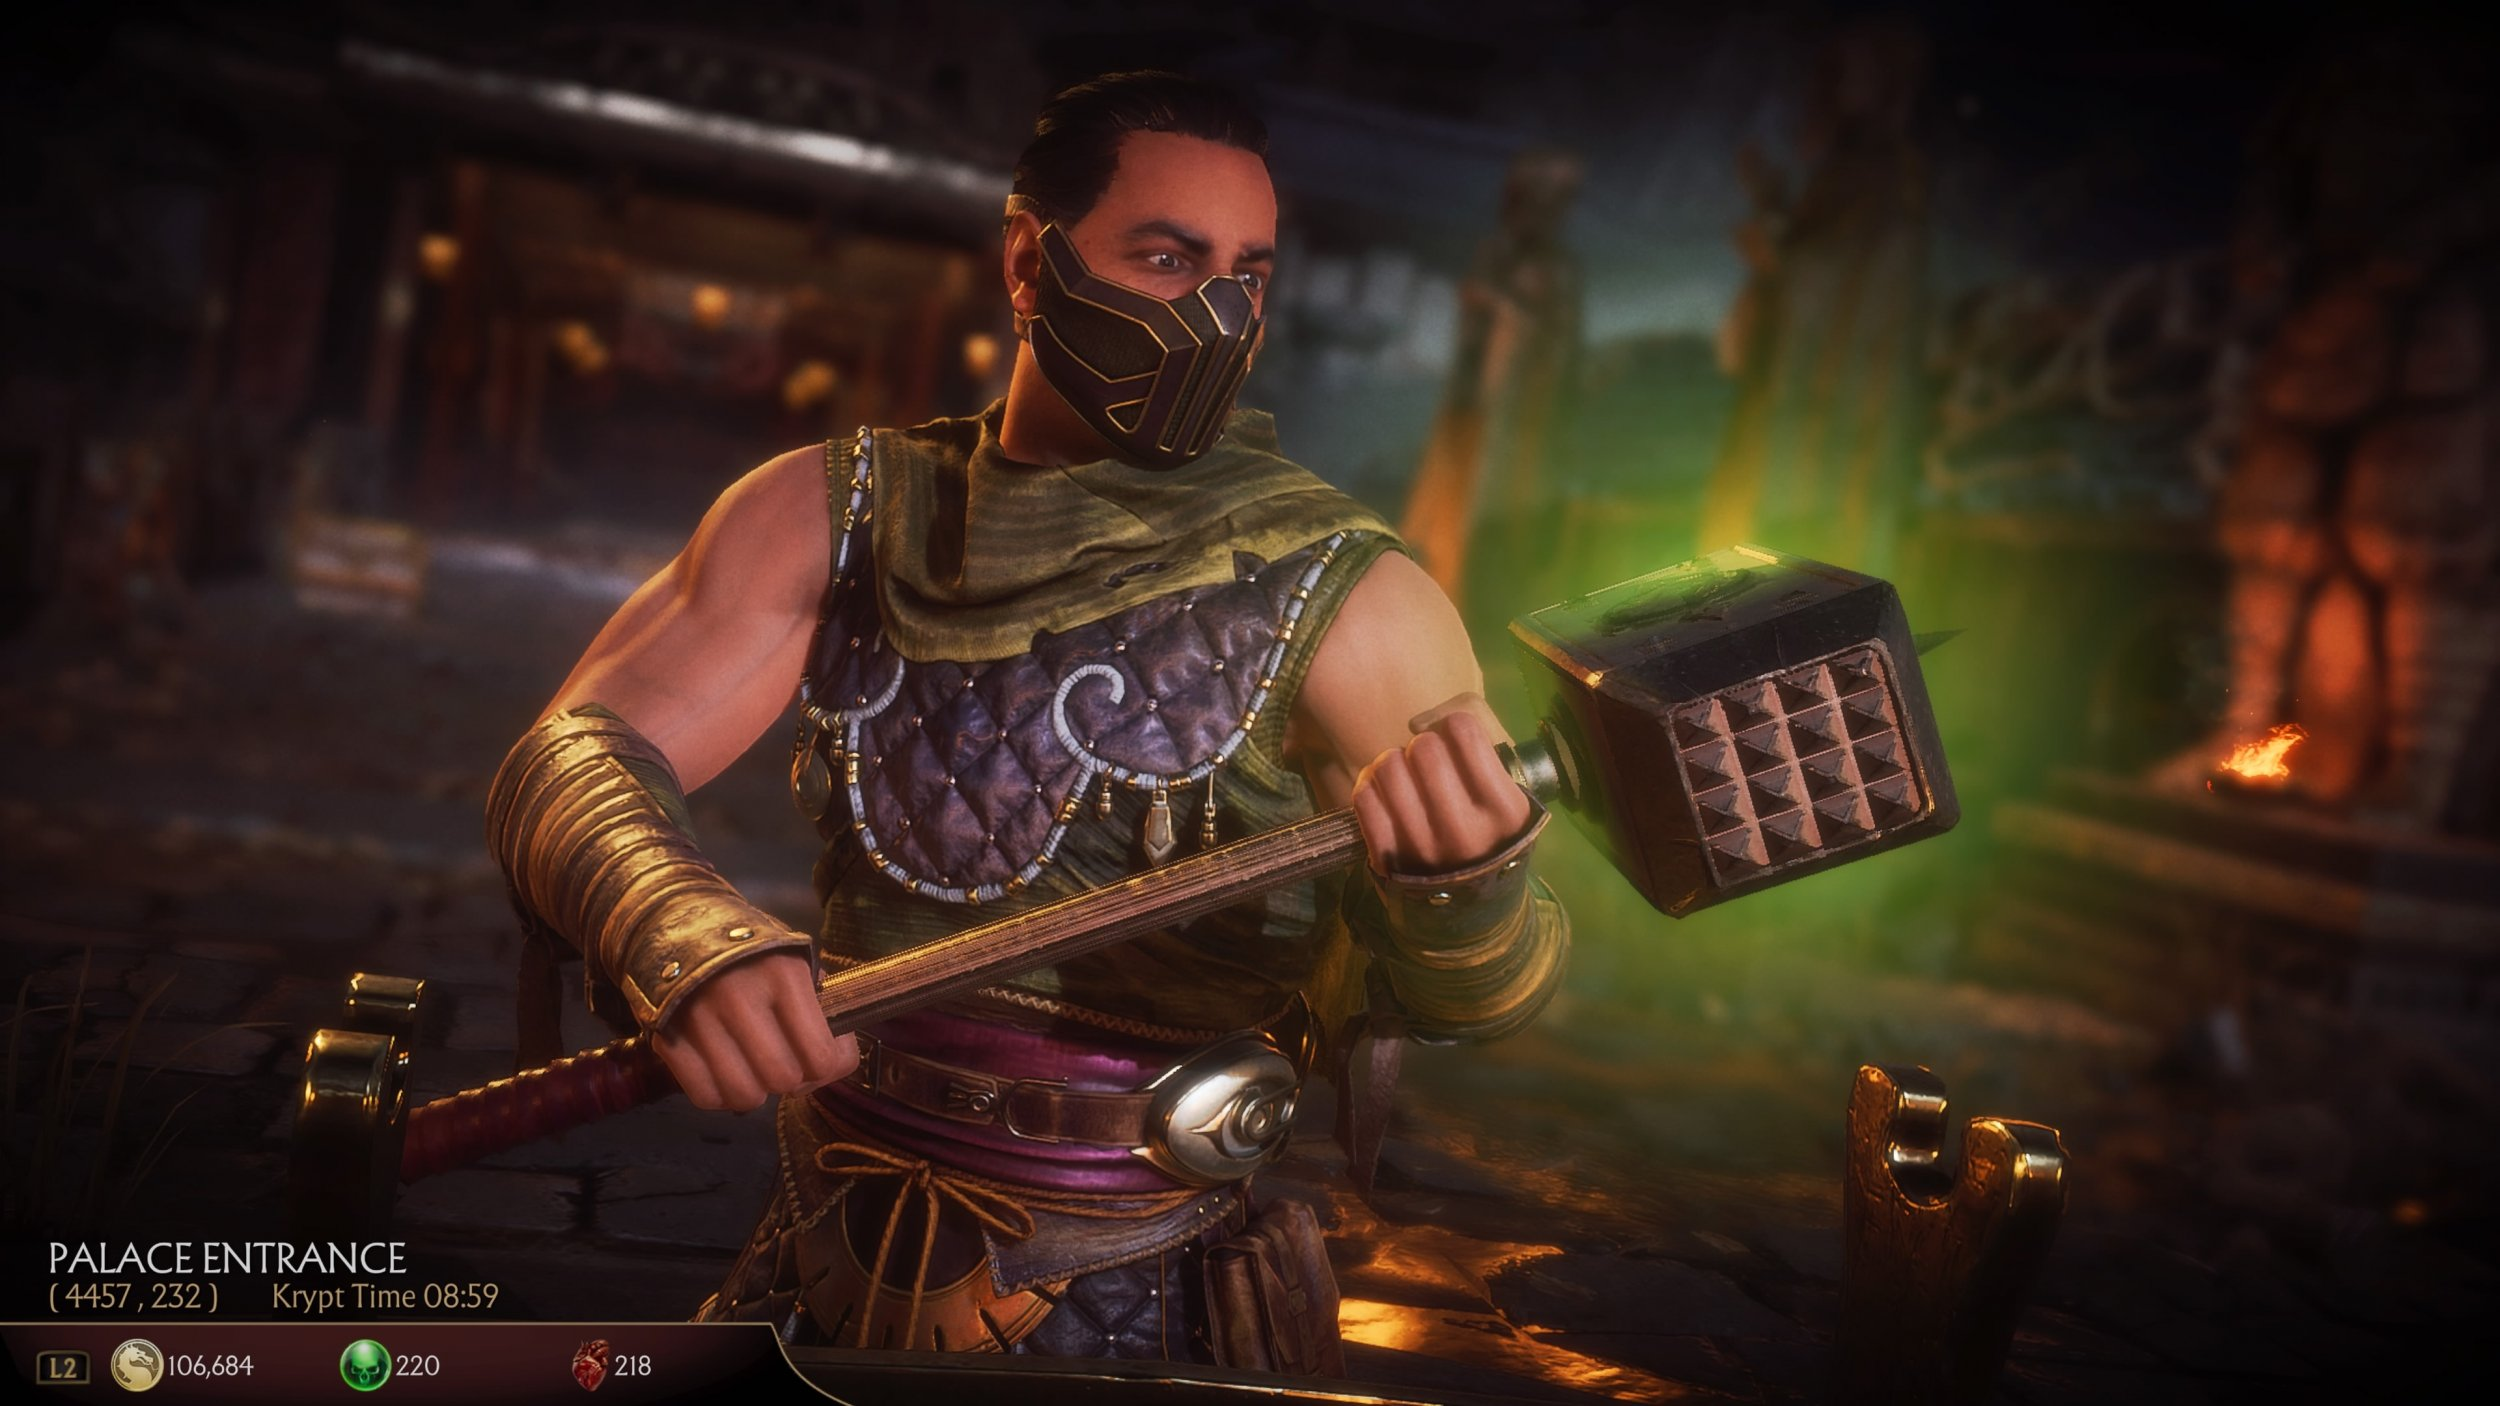 'Mortal Kombat 11' Krypt: Every Chest and Their Contents